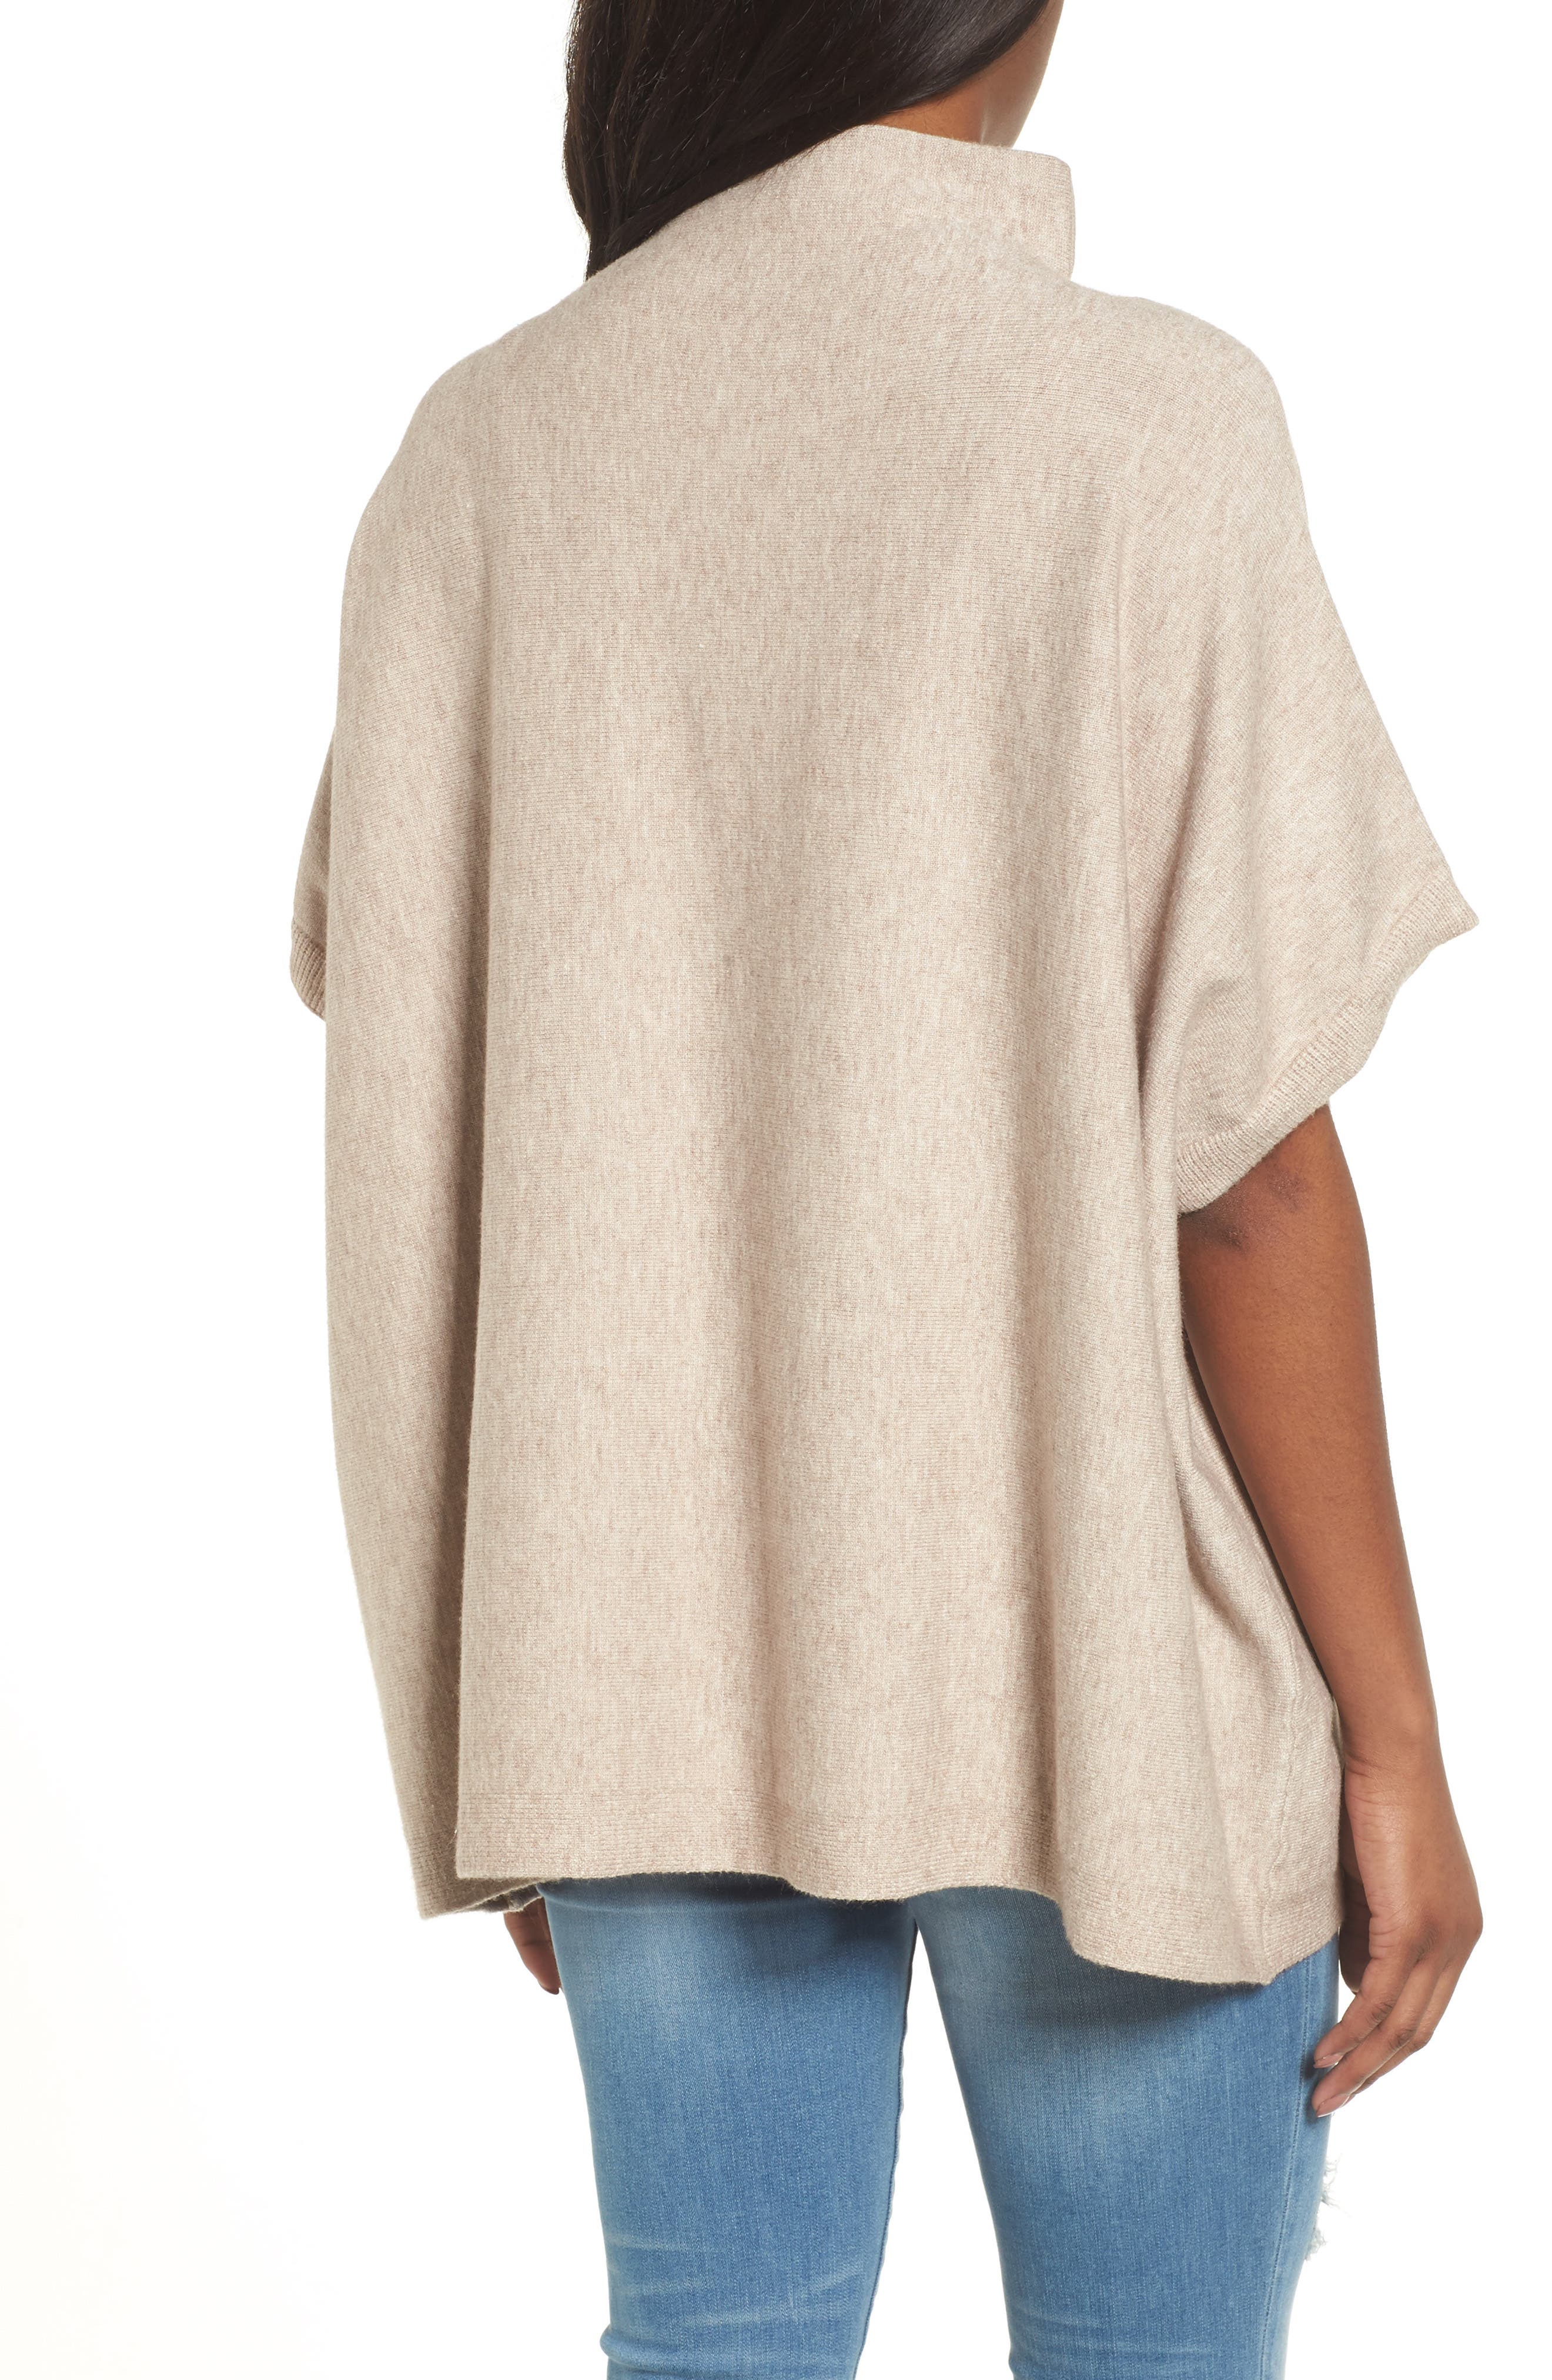 RD Style Boxy Pocket Sweater,                             Alternate thumbnail 2, color,                             Oatmeal